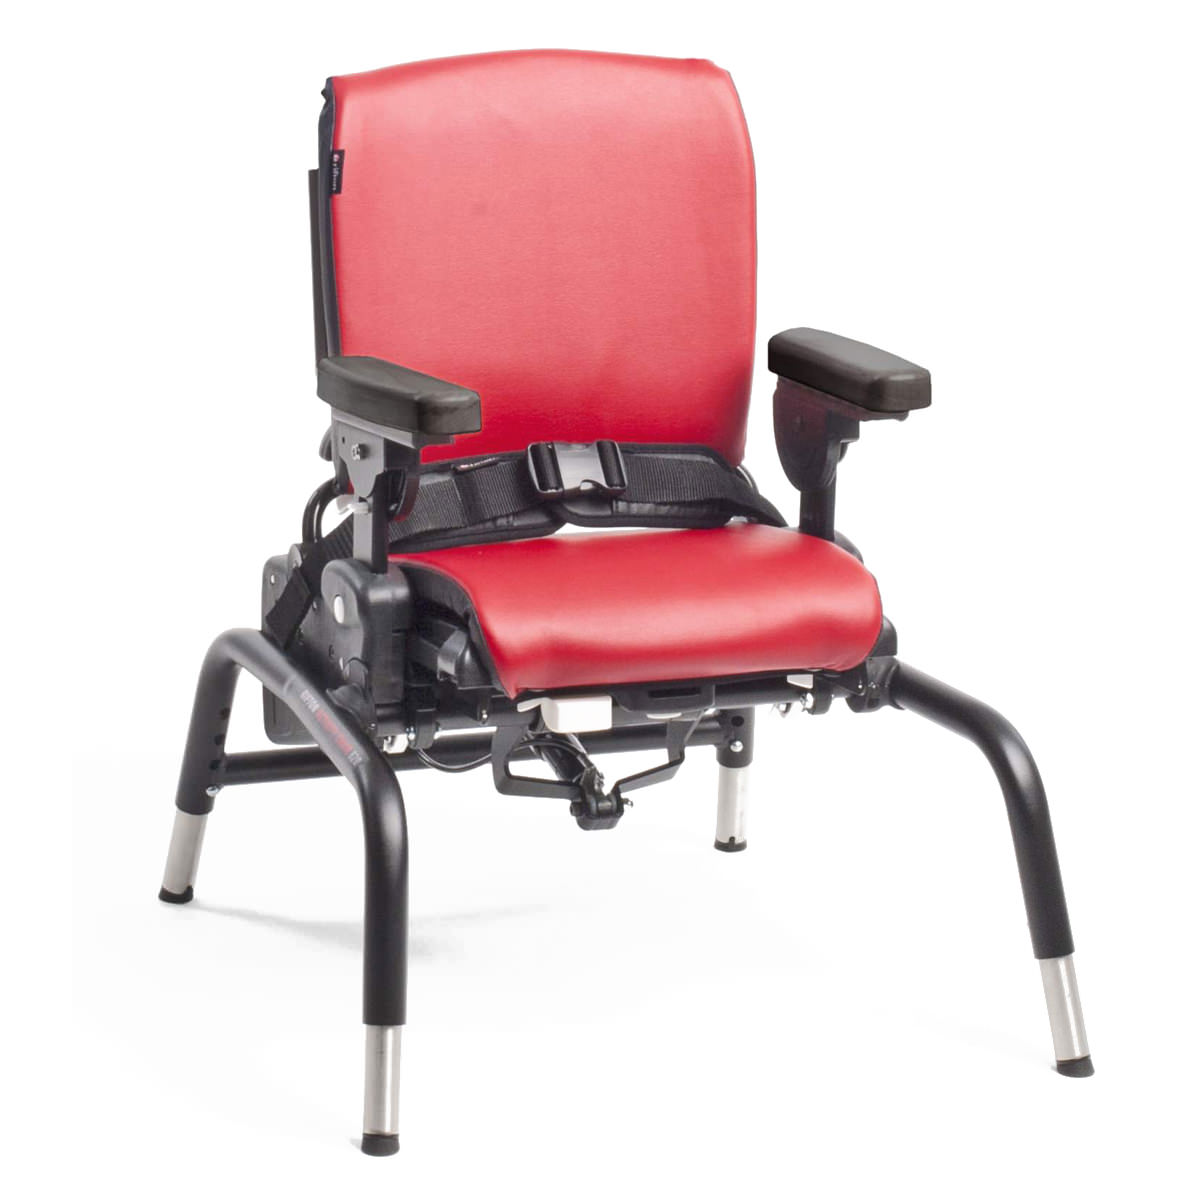 Rifton activity chair with standard base - Small